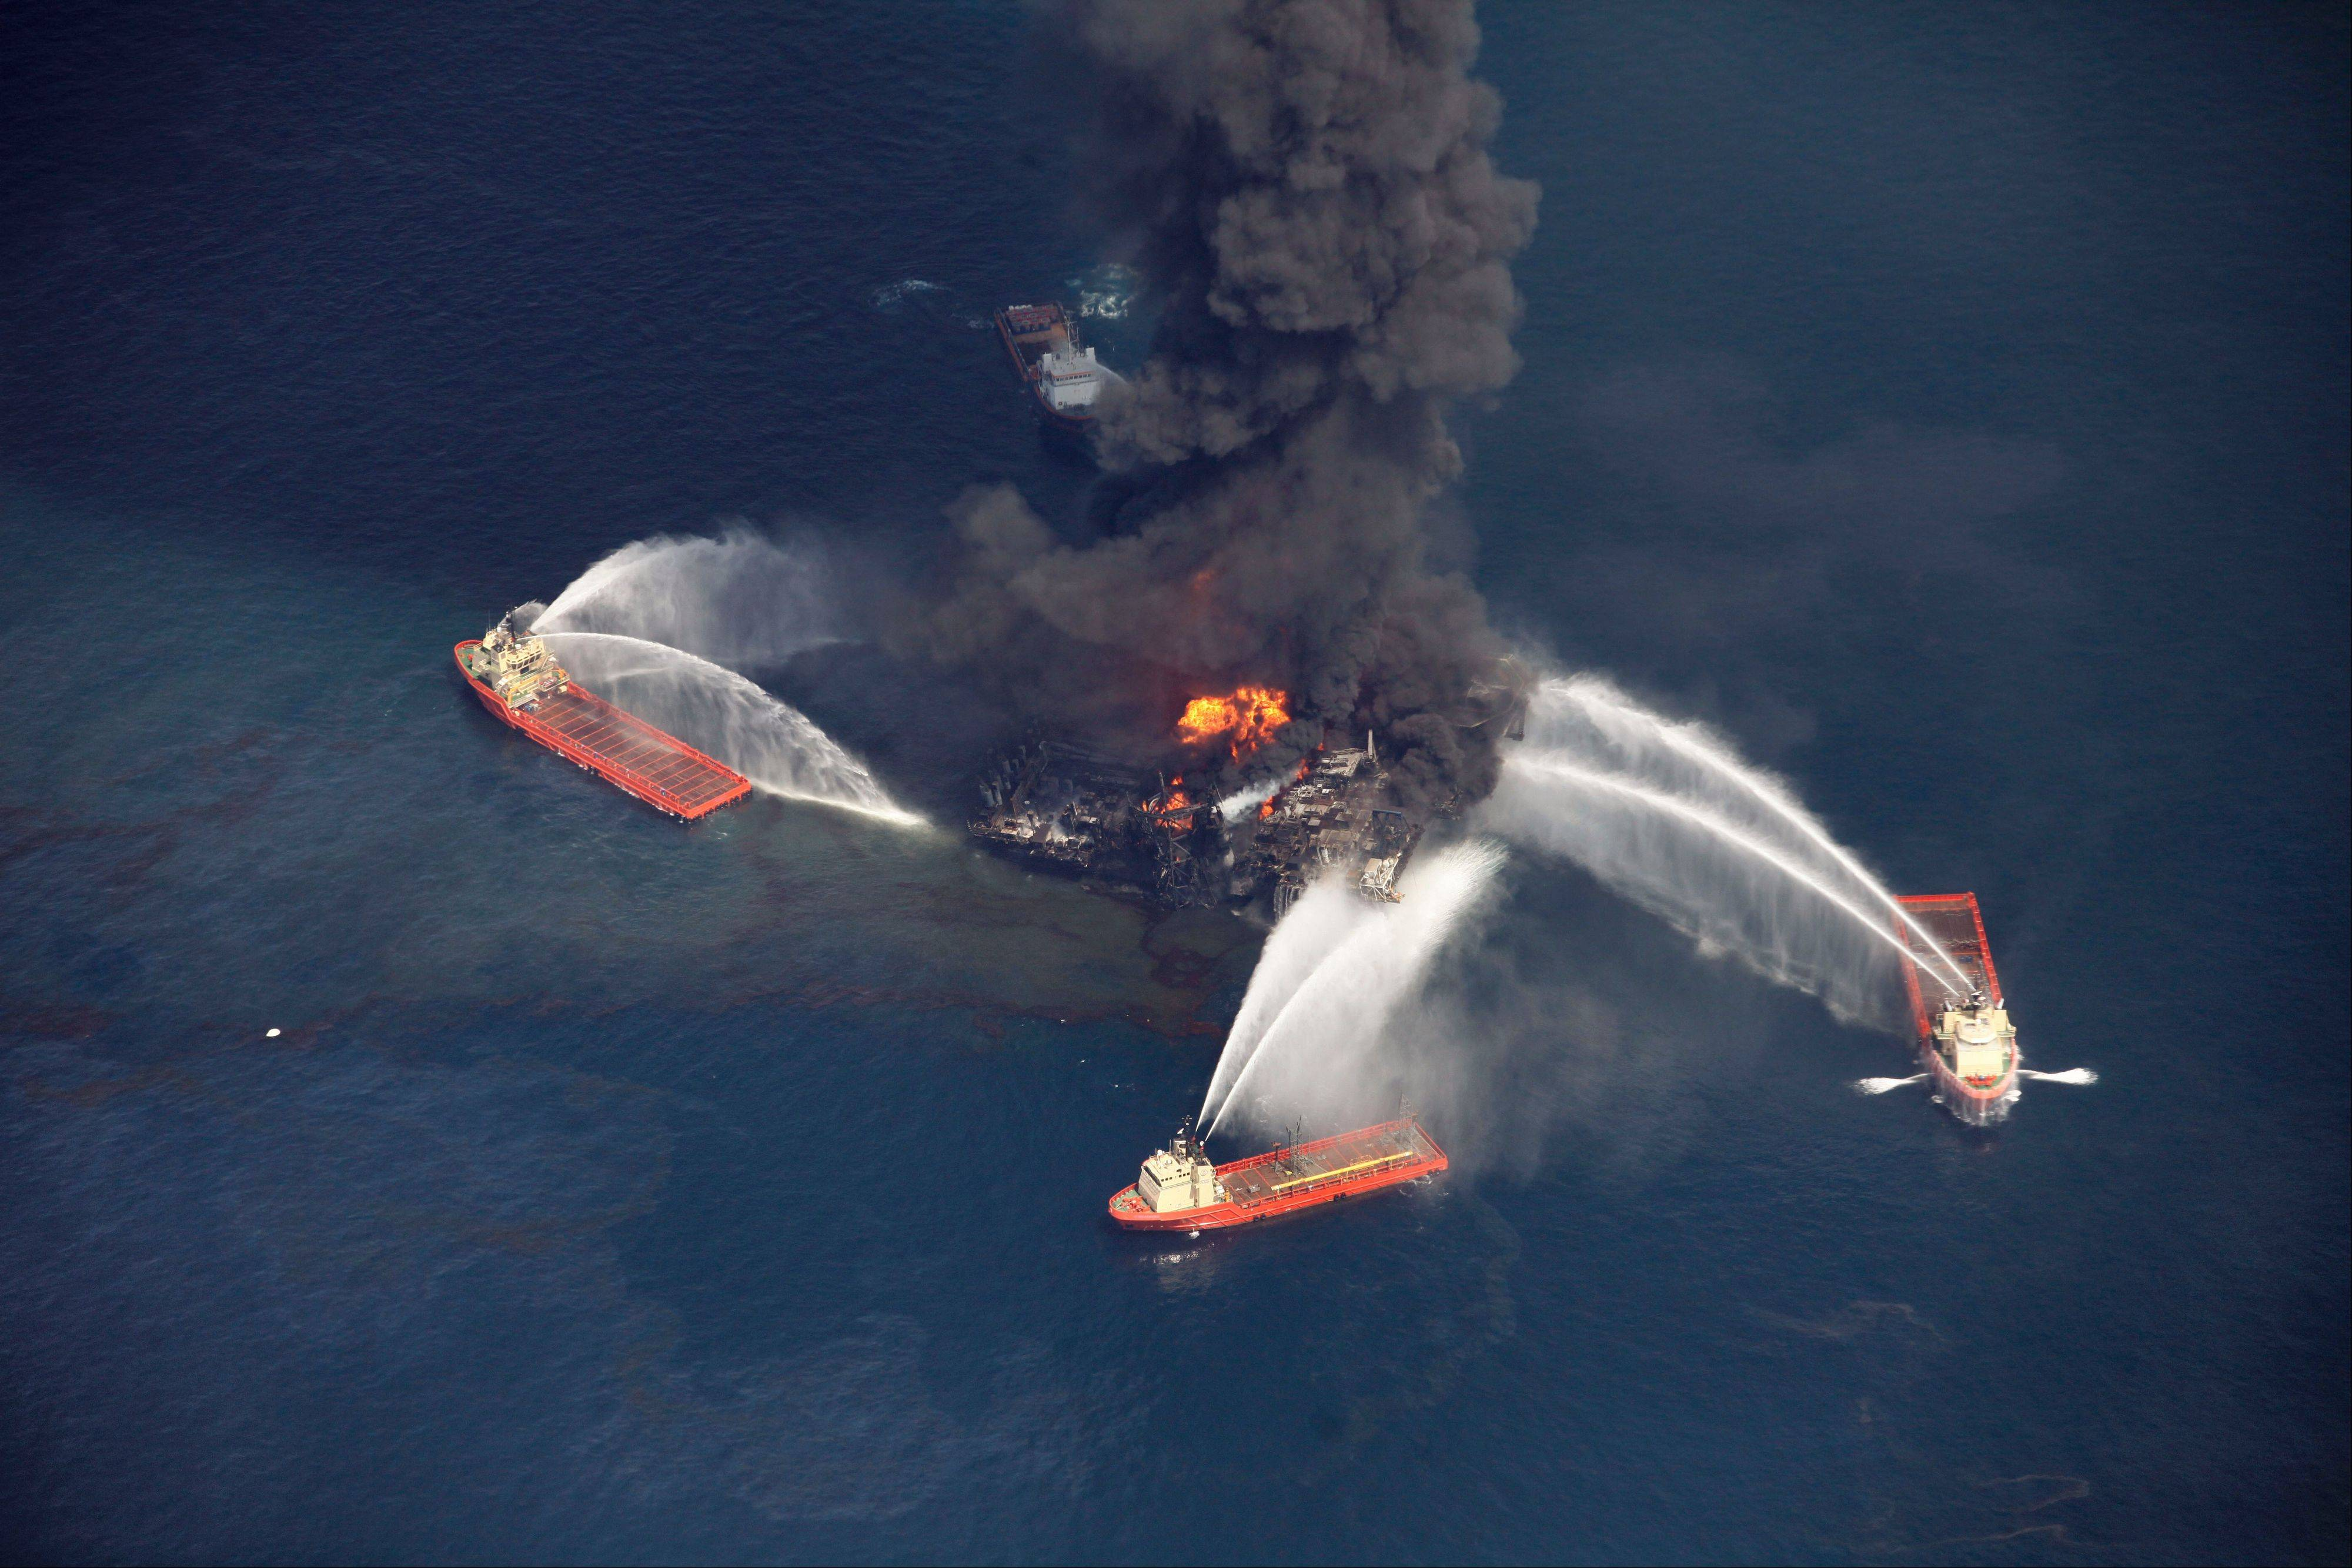 This photo from April 21, 2010, shows an oil slick as the Deepwater Horizon oil rig burns in the Gulf of Mexico, more than 50 miles southeast of Venice on Louisiana's tip. Nearly three years after the deadly rig explosion triggered the nation's worst offshore oil spill, a federal judge in New Orleans is set to preside over a high-stakes trial for the raft of litigation spawned by the disaster.